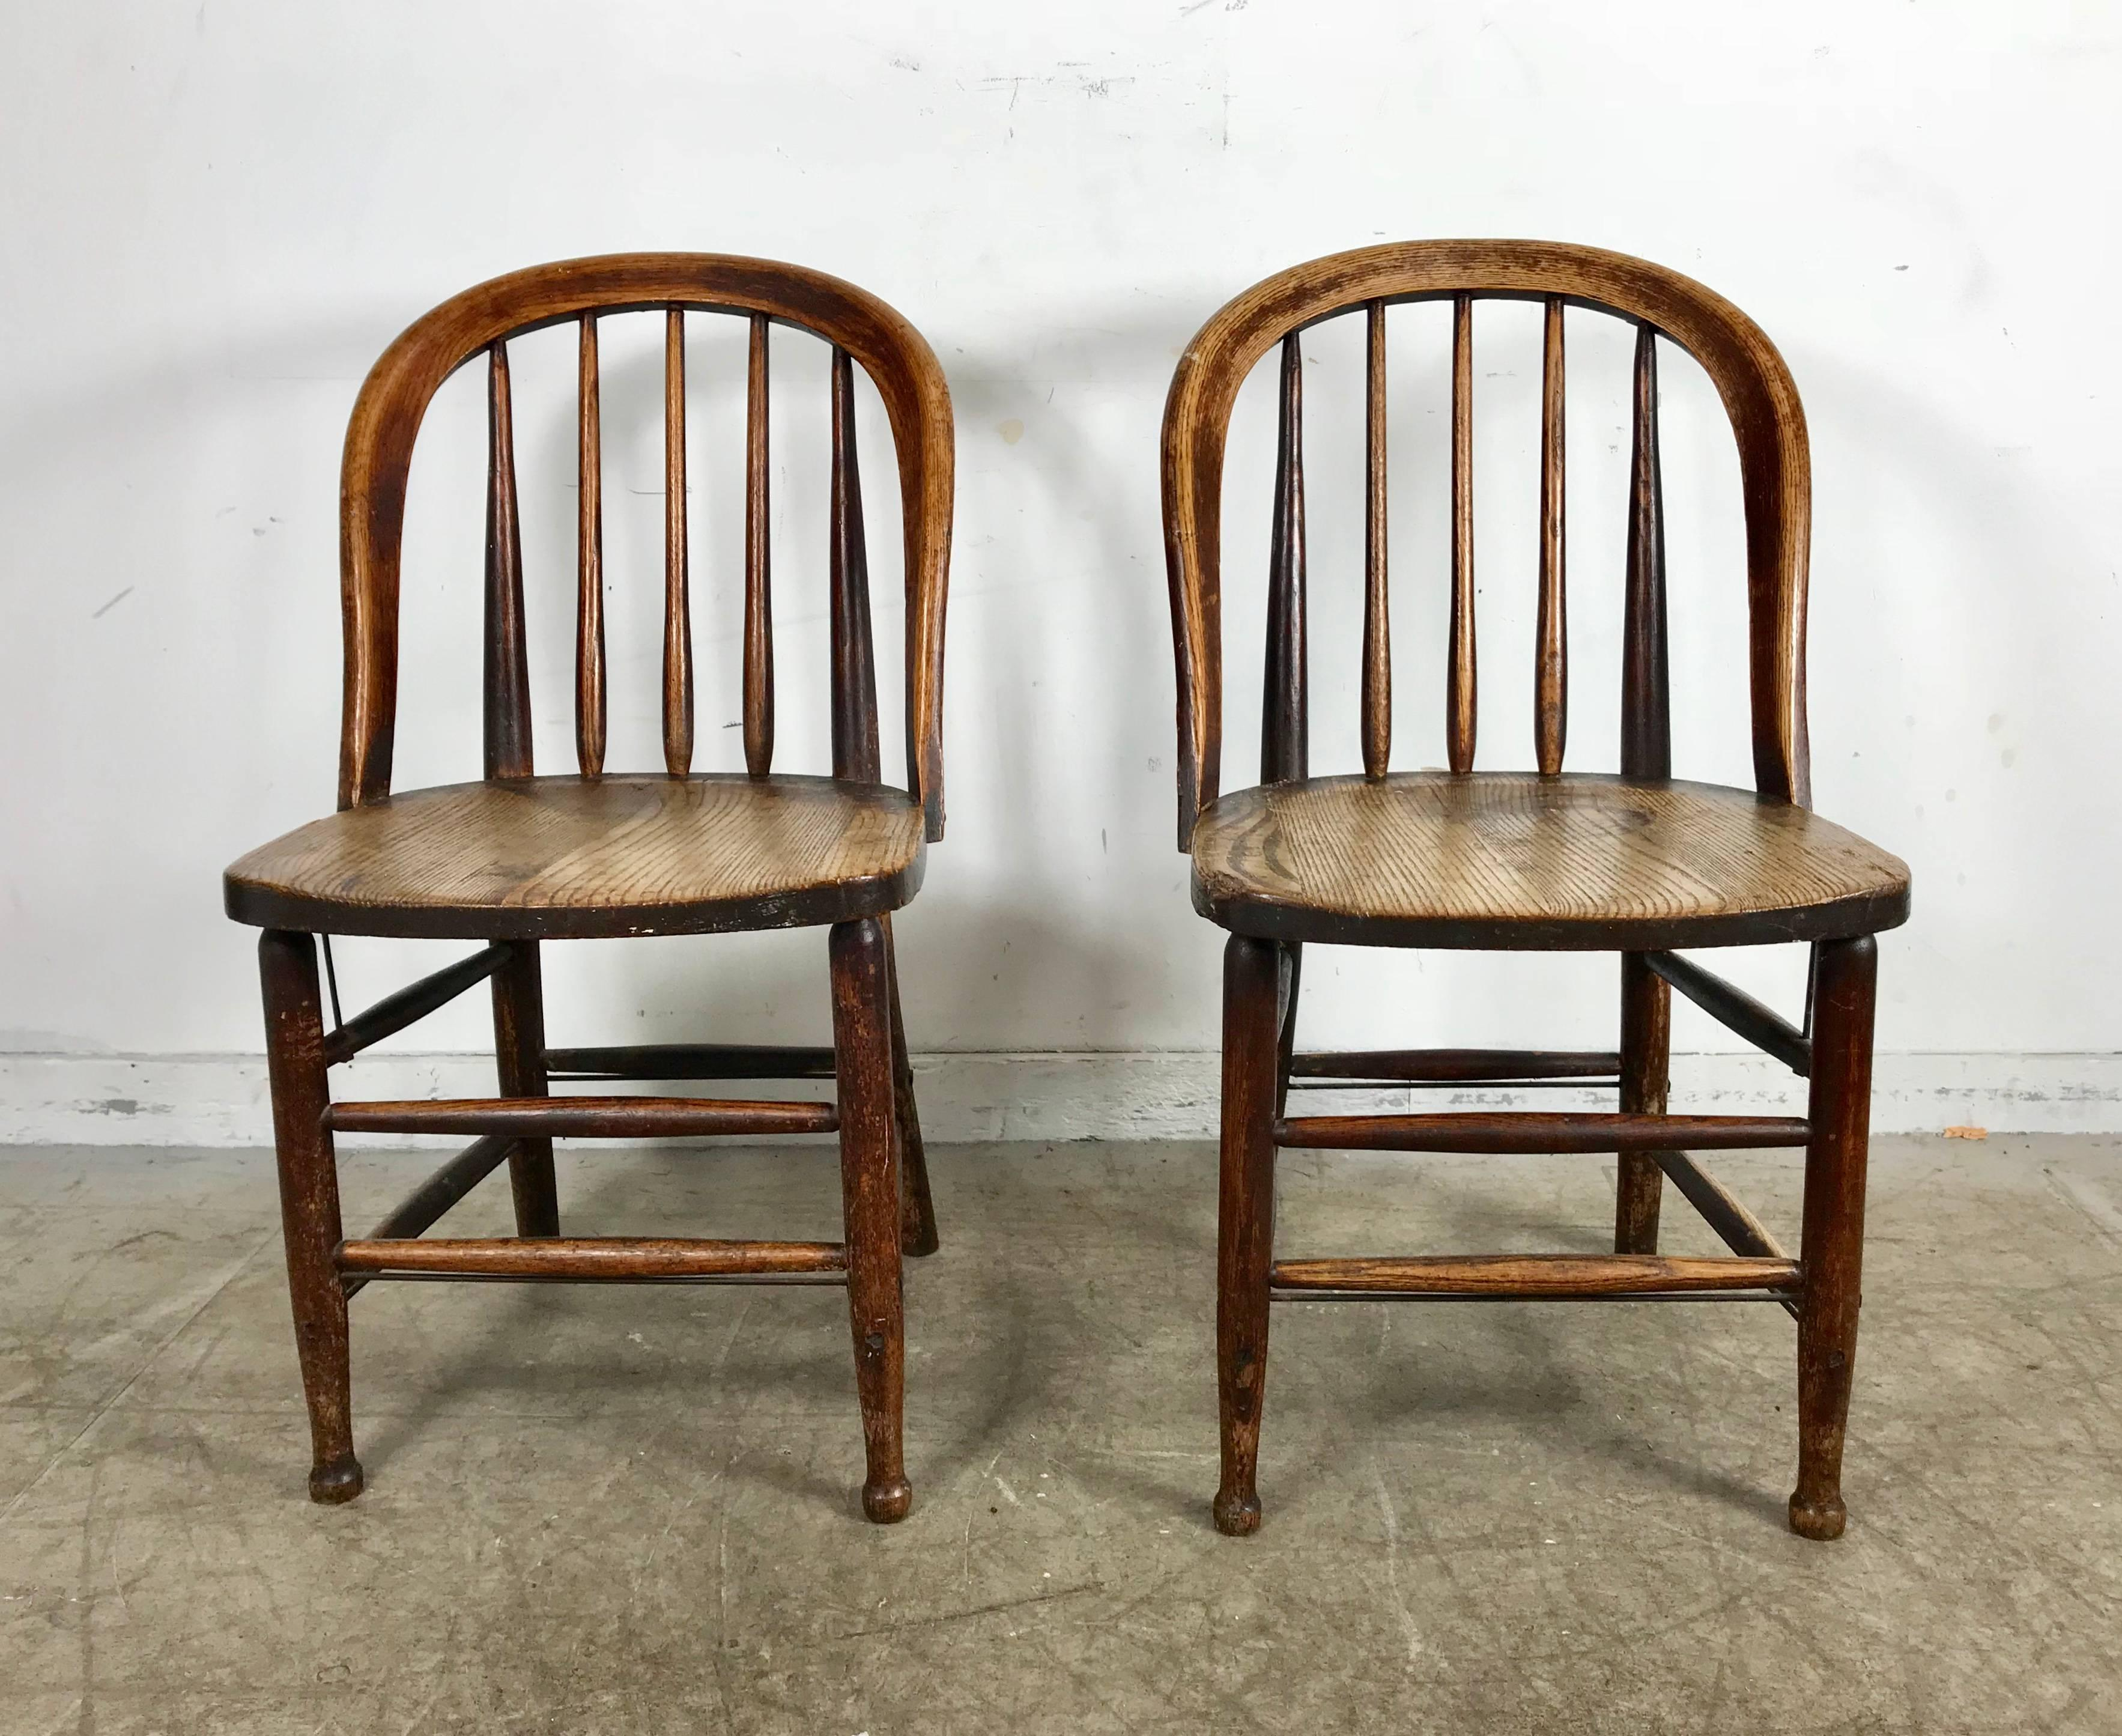 Pair Of Early Oak Antique Industrial Side Chairs By Heywood Wakefield,  Solid Oak Construction,